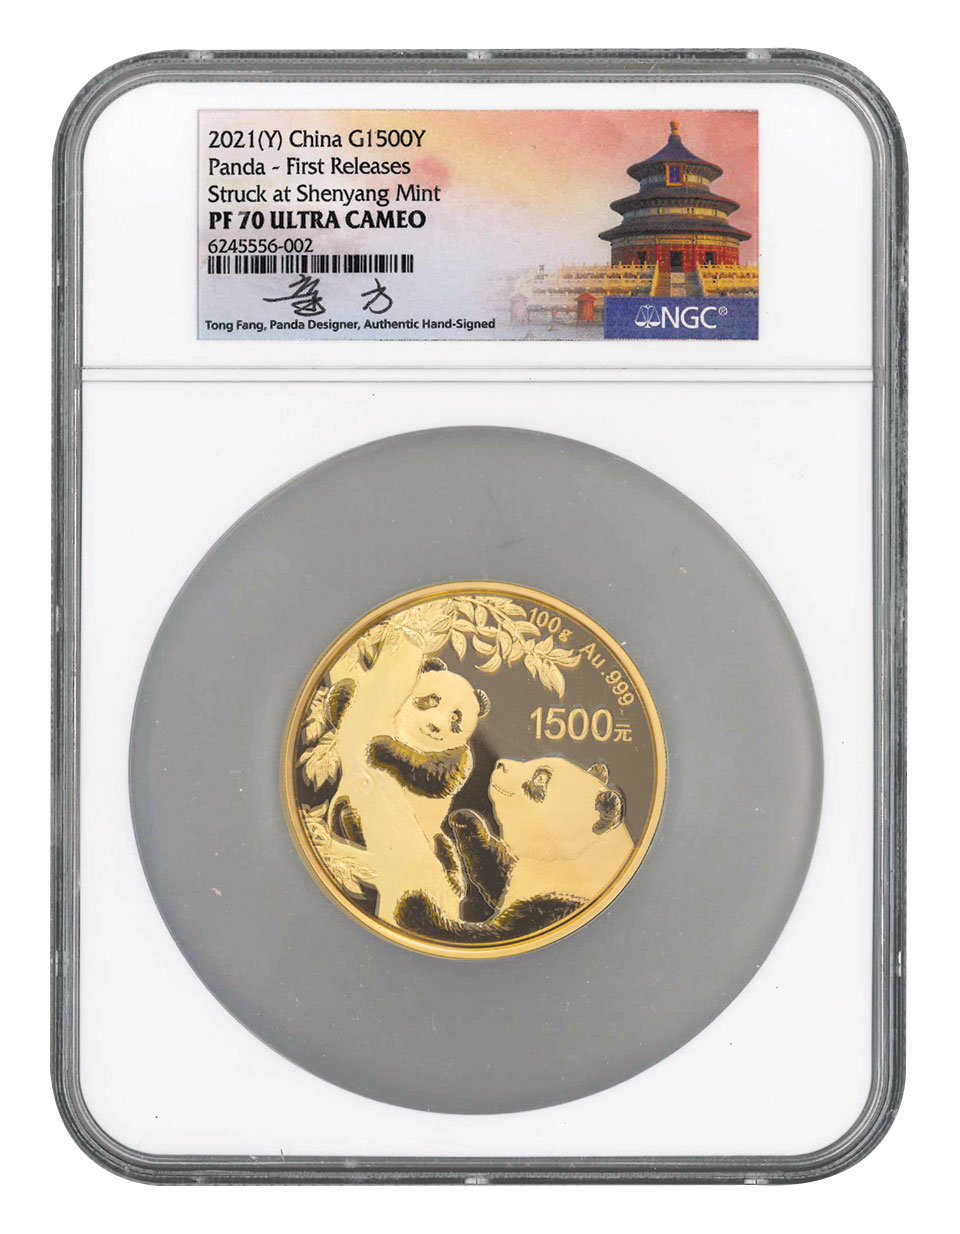 2021 China 100 g Gold Panda Proof ¥1,500 Coin Scarce and Unique Coin Division NGC PF70 UC FR Tong Signed Label